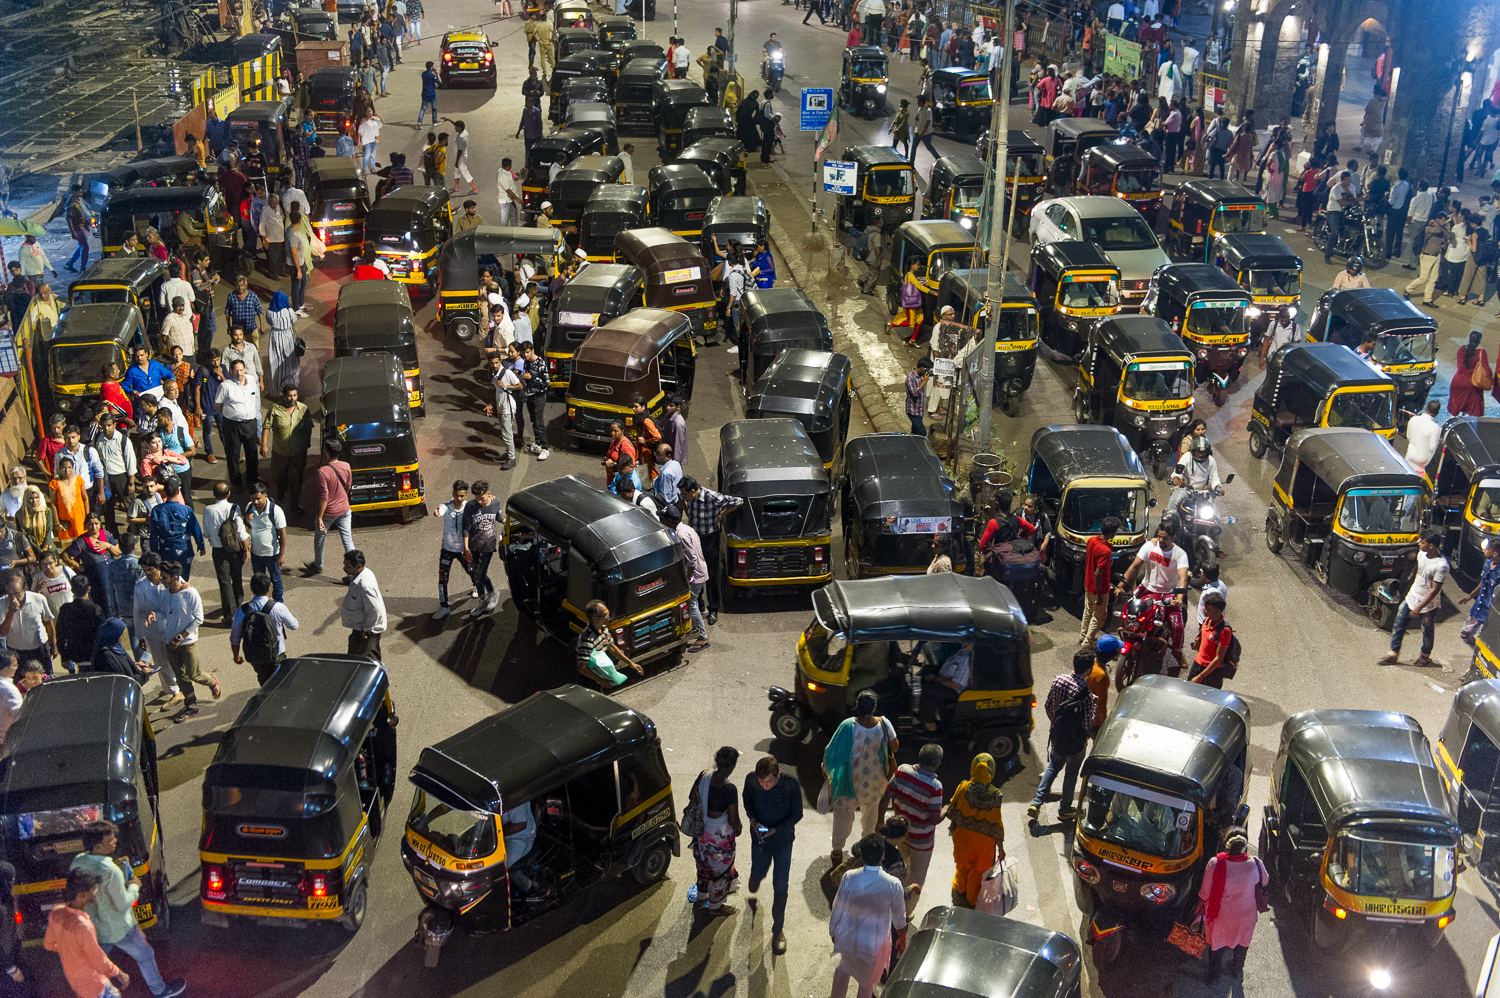 Traffic outside Matunga train station, Mumbai, 2019